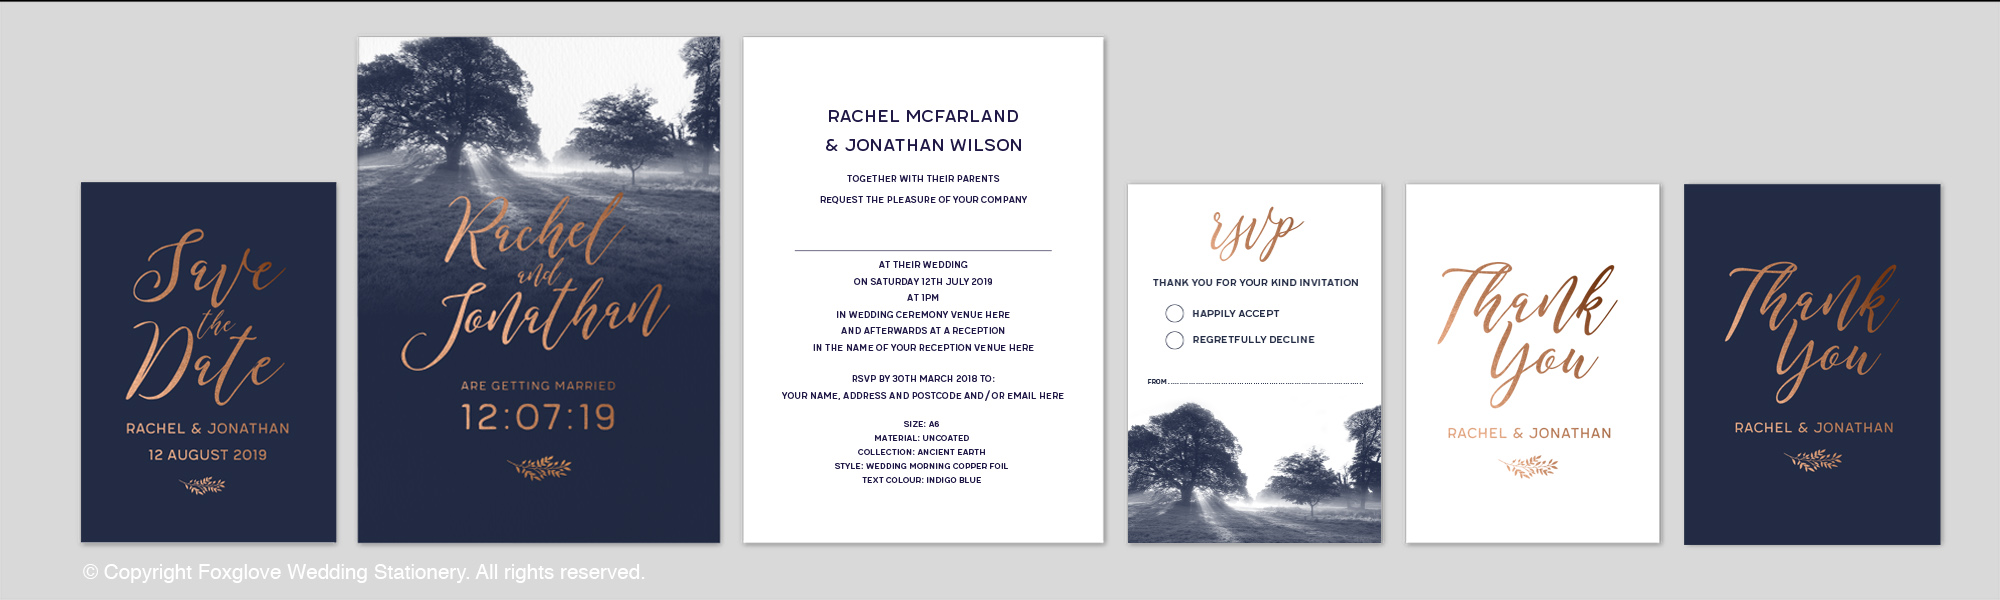 WEDDING MORNING - Foiled - This range is printed on 340g uncoated velvet laminated card. Text & detailing in metallic copper foil - gold & silver also available.This range comes with White Laid Envelopes as standard. (Metallic Envelopes also available.) Price Range from £2.10 per invite.Contact us for Full Specification & Price Guide or to request a sample. See photographic image in the Gallery.